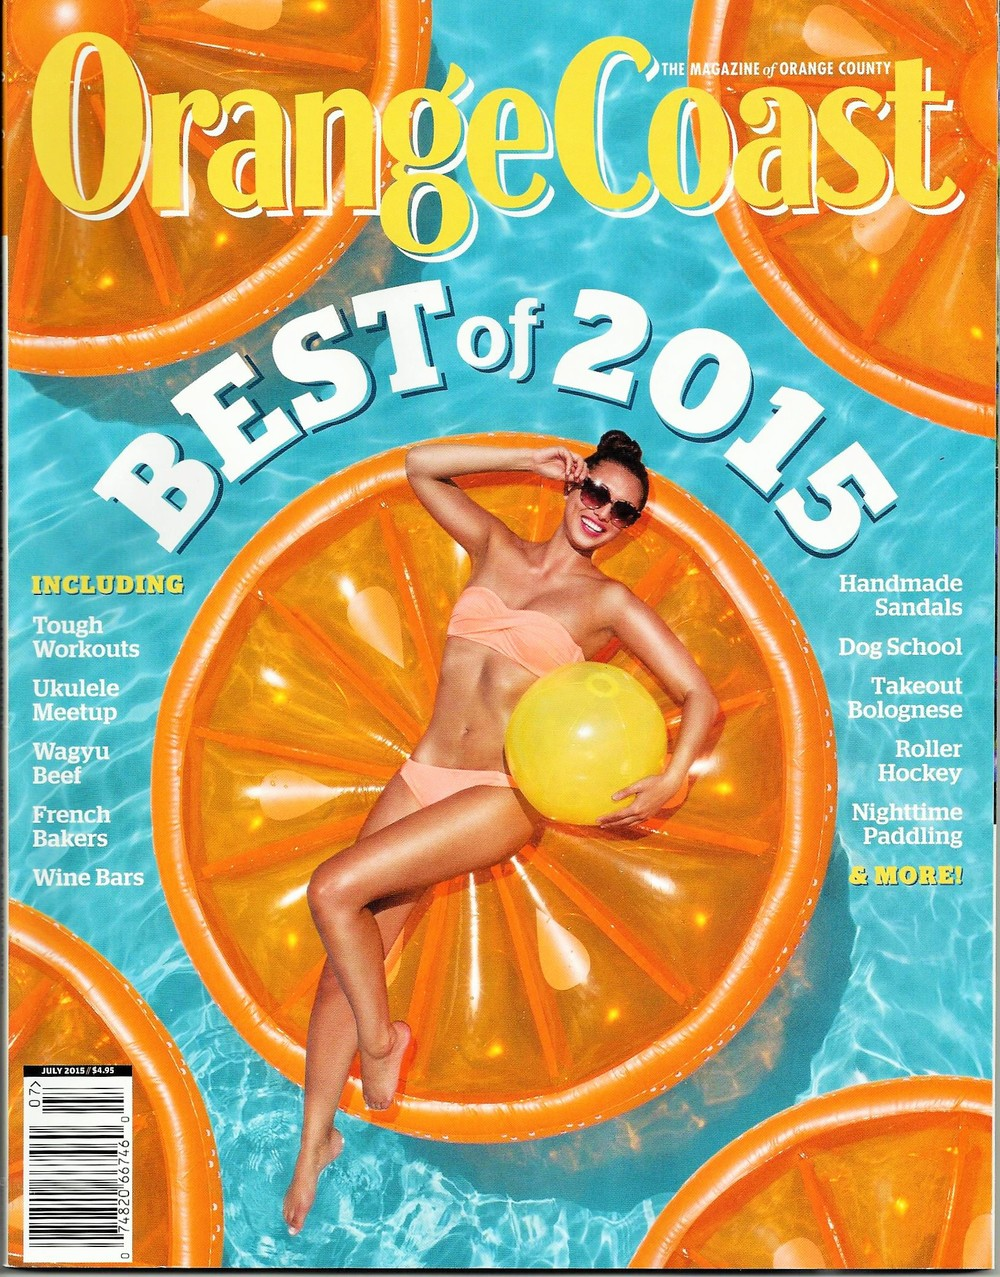 Boxfli-coast-magazine-cover